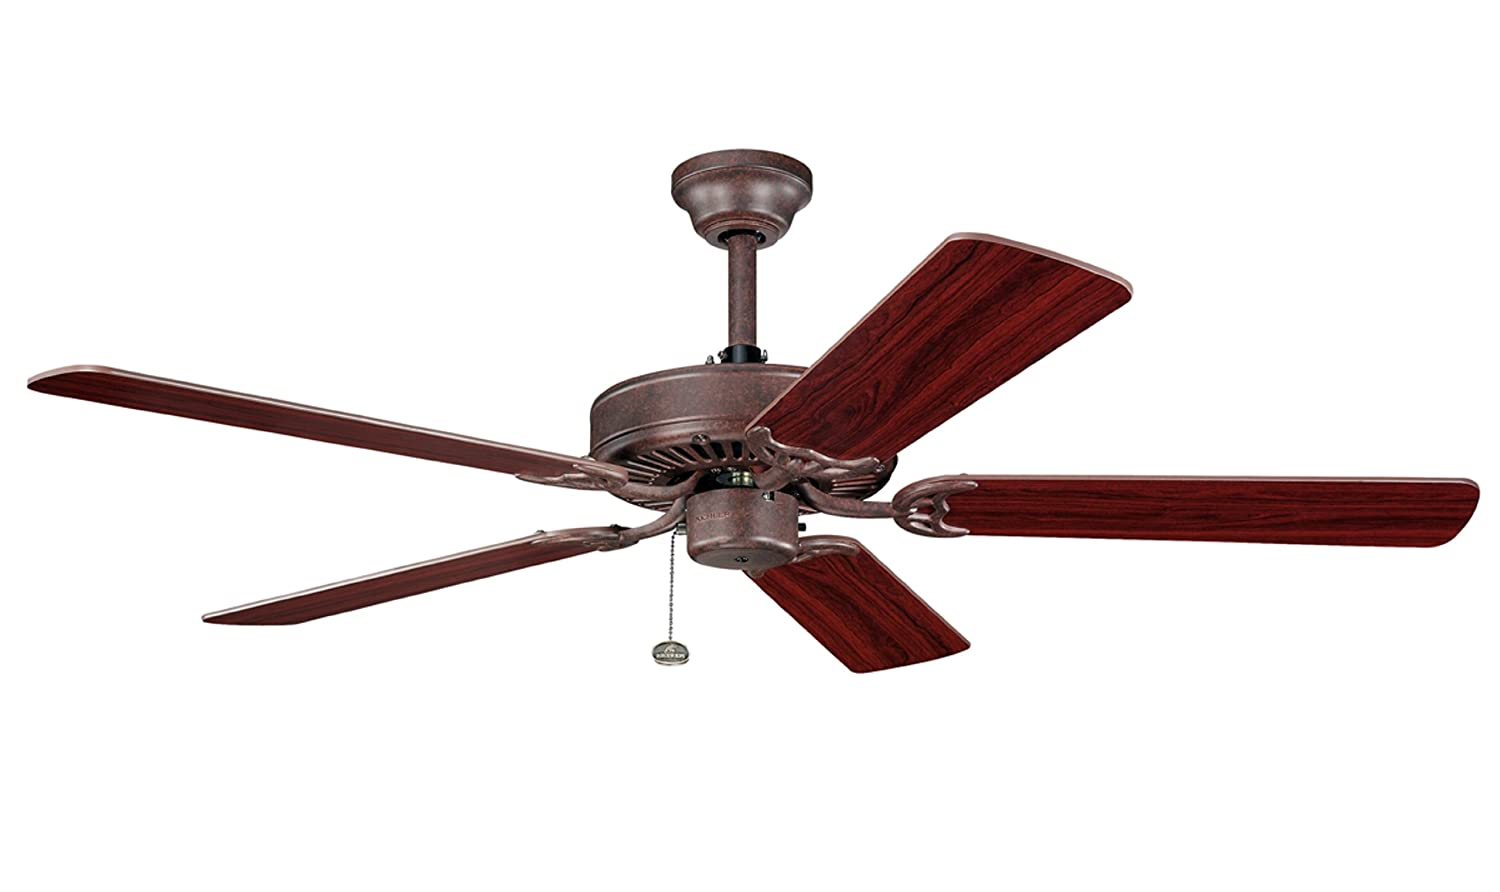 Kichler lighting 339010tz sterling manor 52in energy star ceiling kichler lighting 339010tz sterling manor 52in energy star ceiling fan tannery bronze finish with reversible teakcherry blades rustic ceiling fan aloadofball Image collections